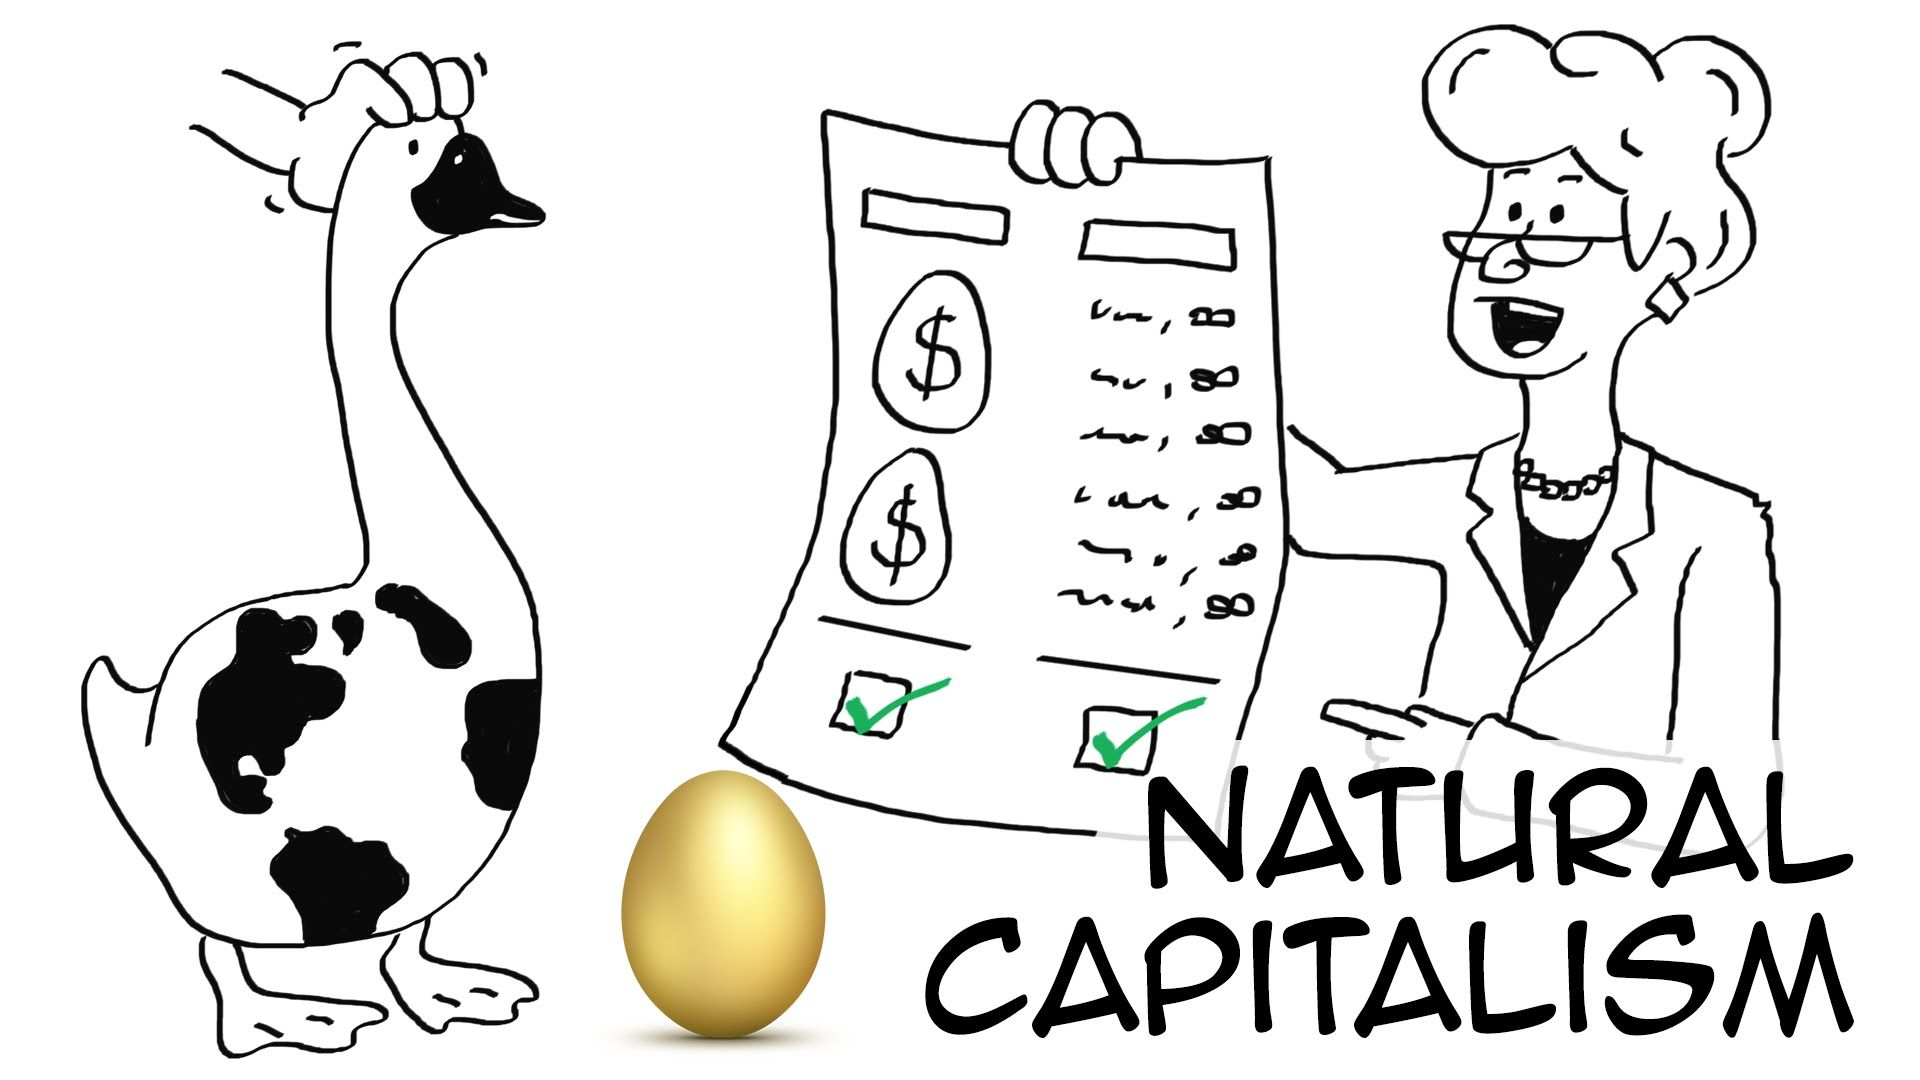 Natural Capitalism, a video by Sustainability Illustrated